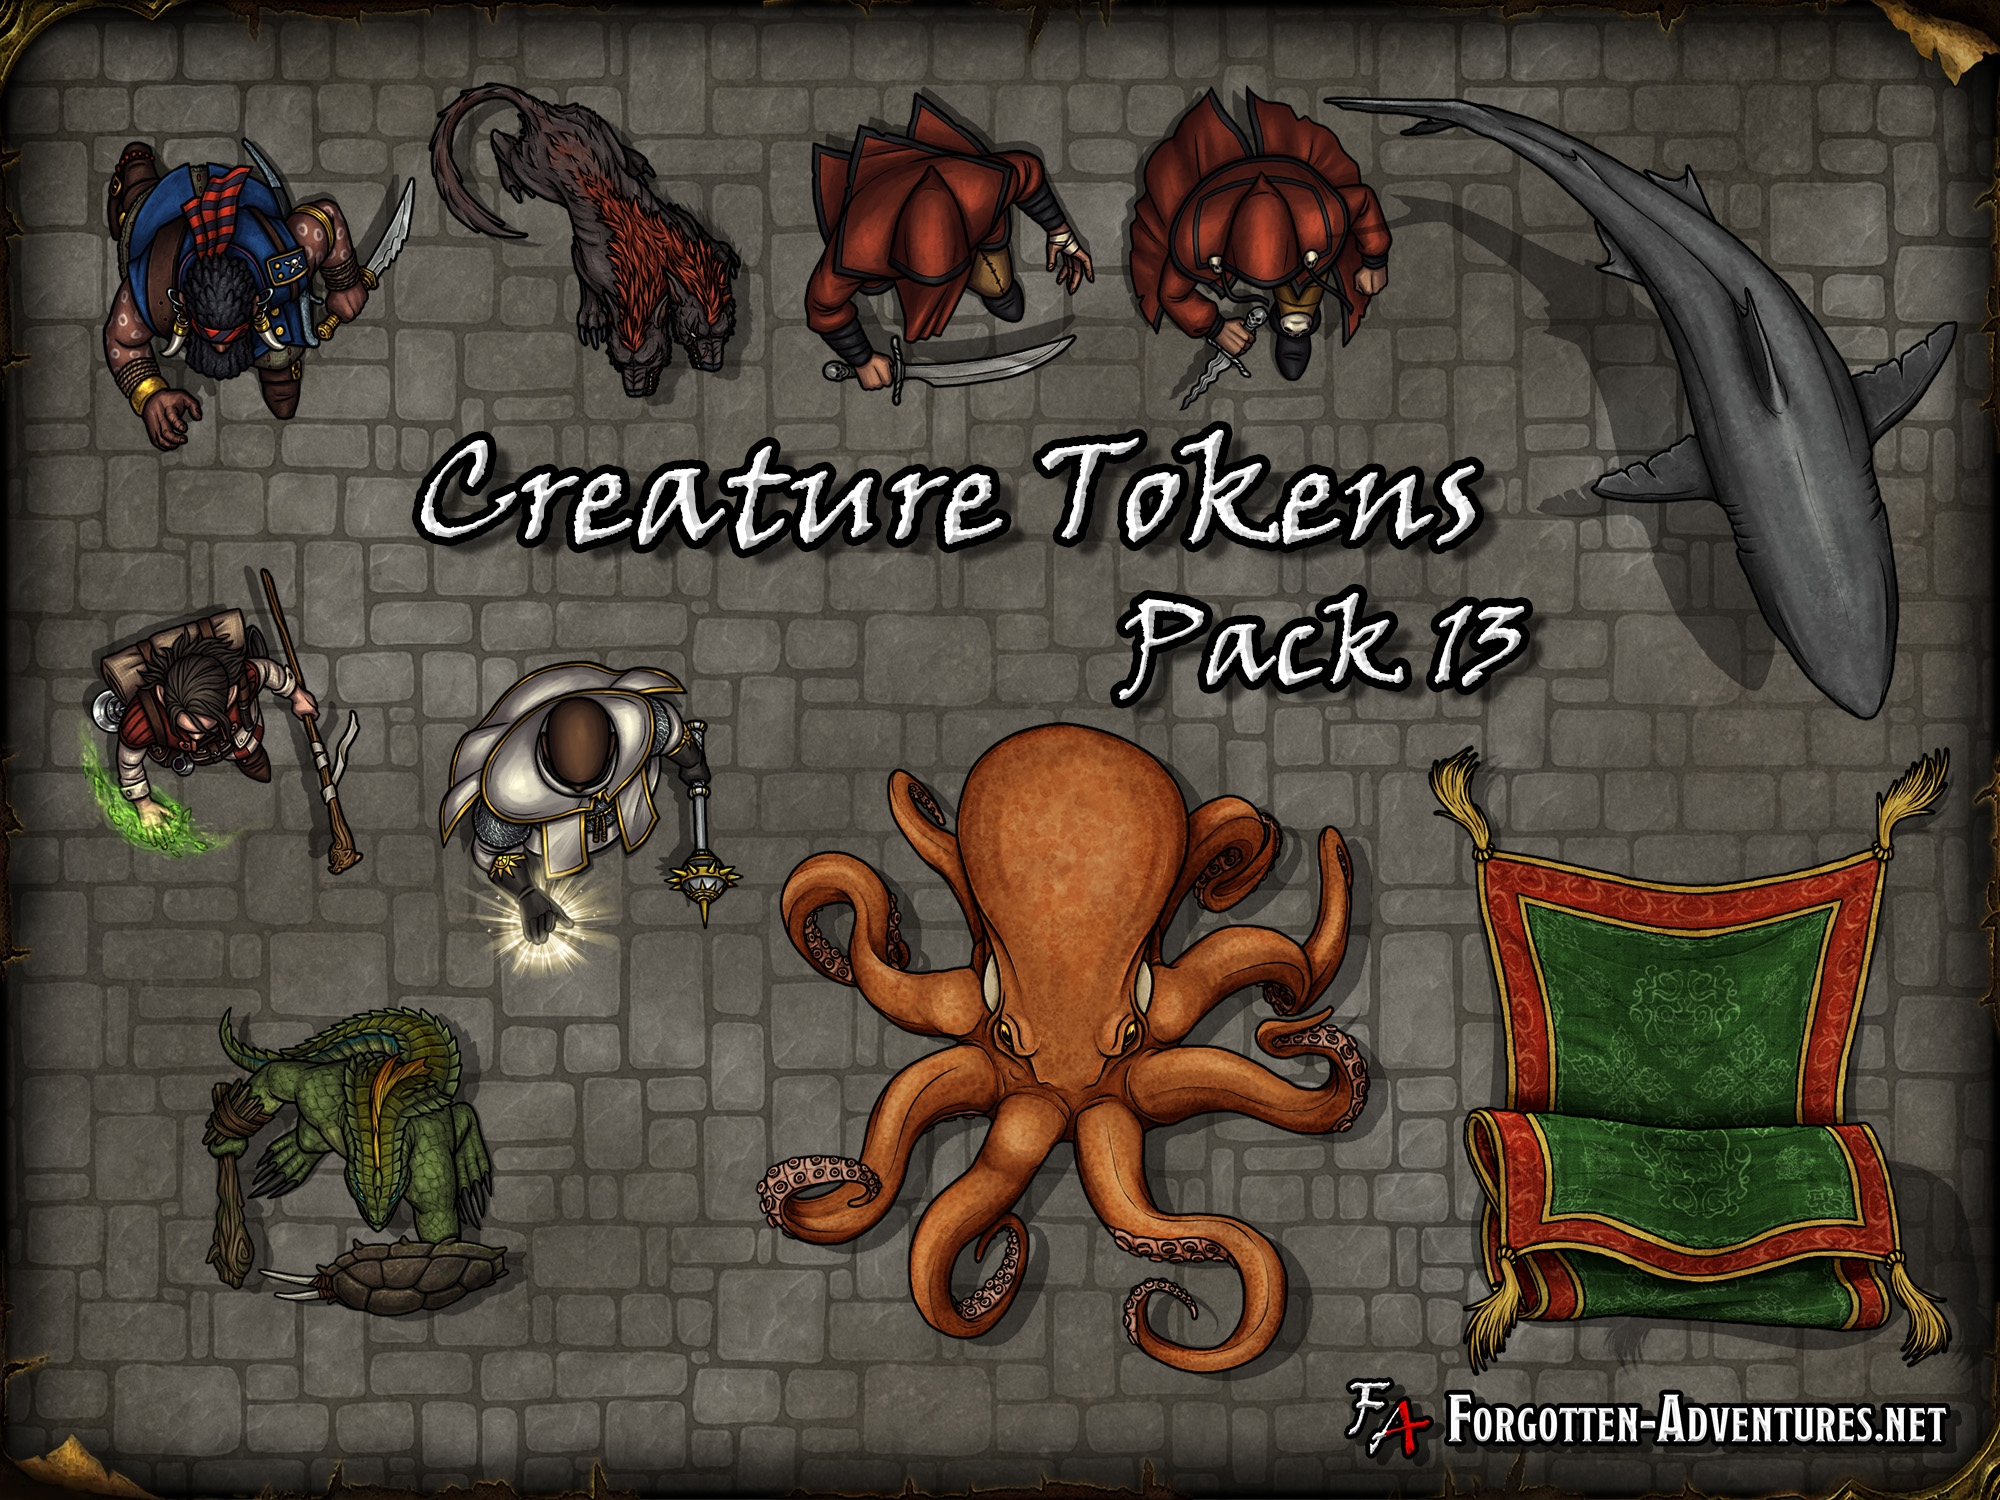 Tokens-Creature-Tokens-Pack-13.jpg?i=704